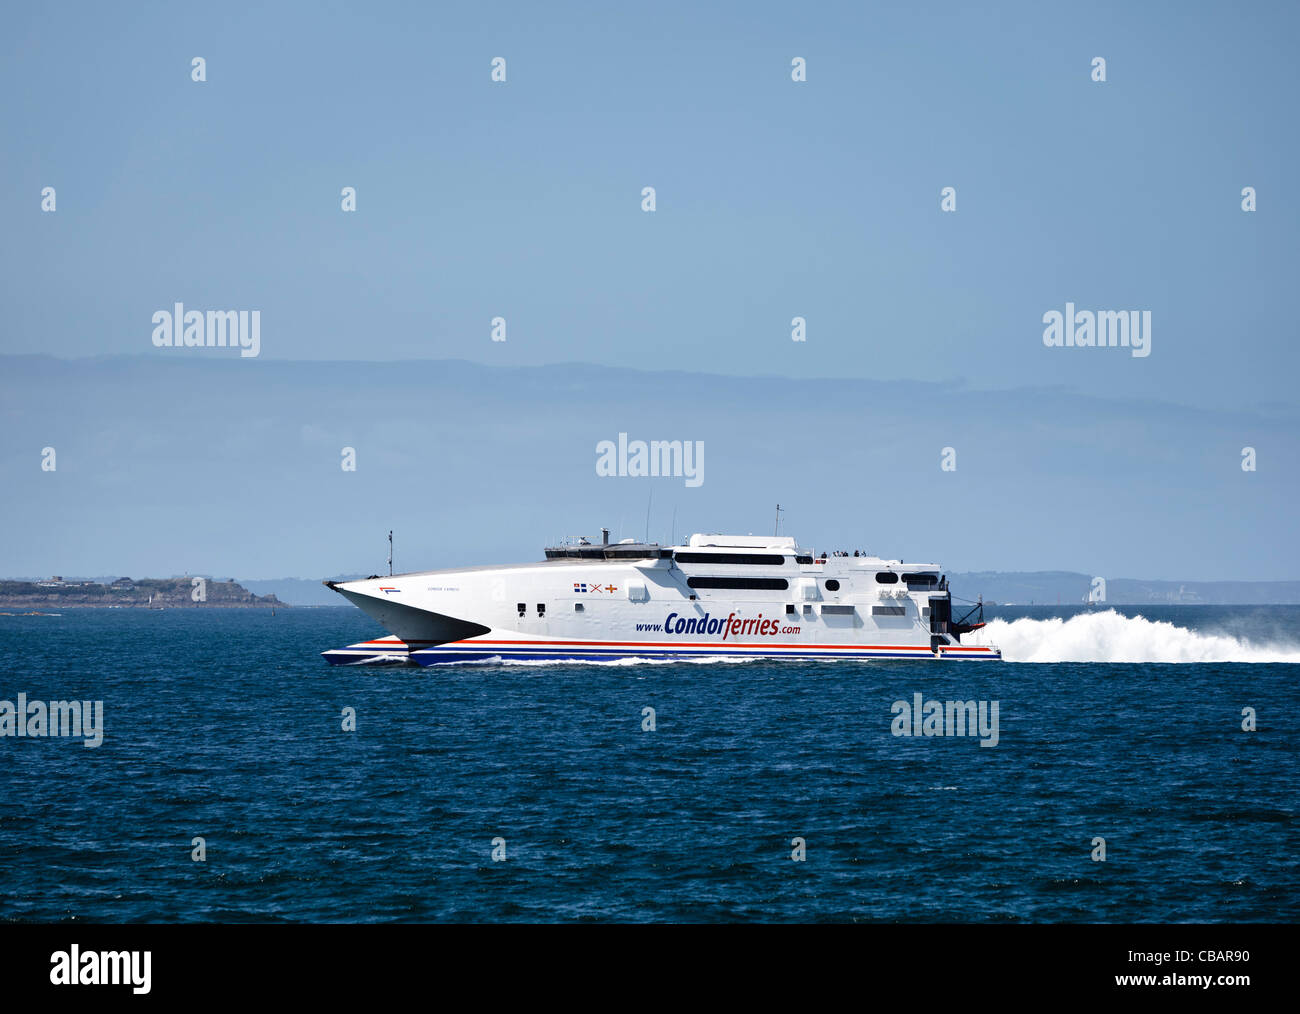 Condor Ferries catamaran coming into Saint Malo harbour, Brittany, France - Stock Image